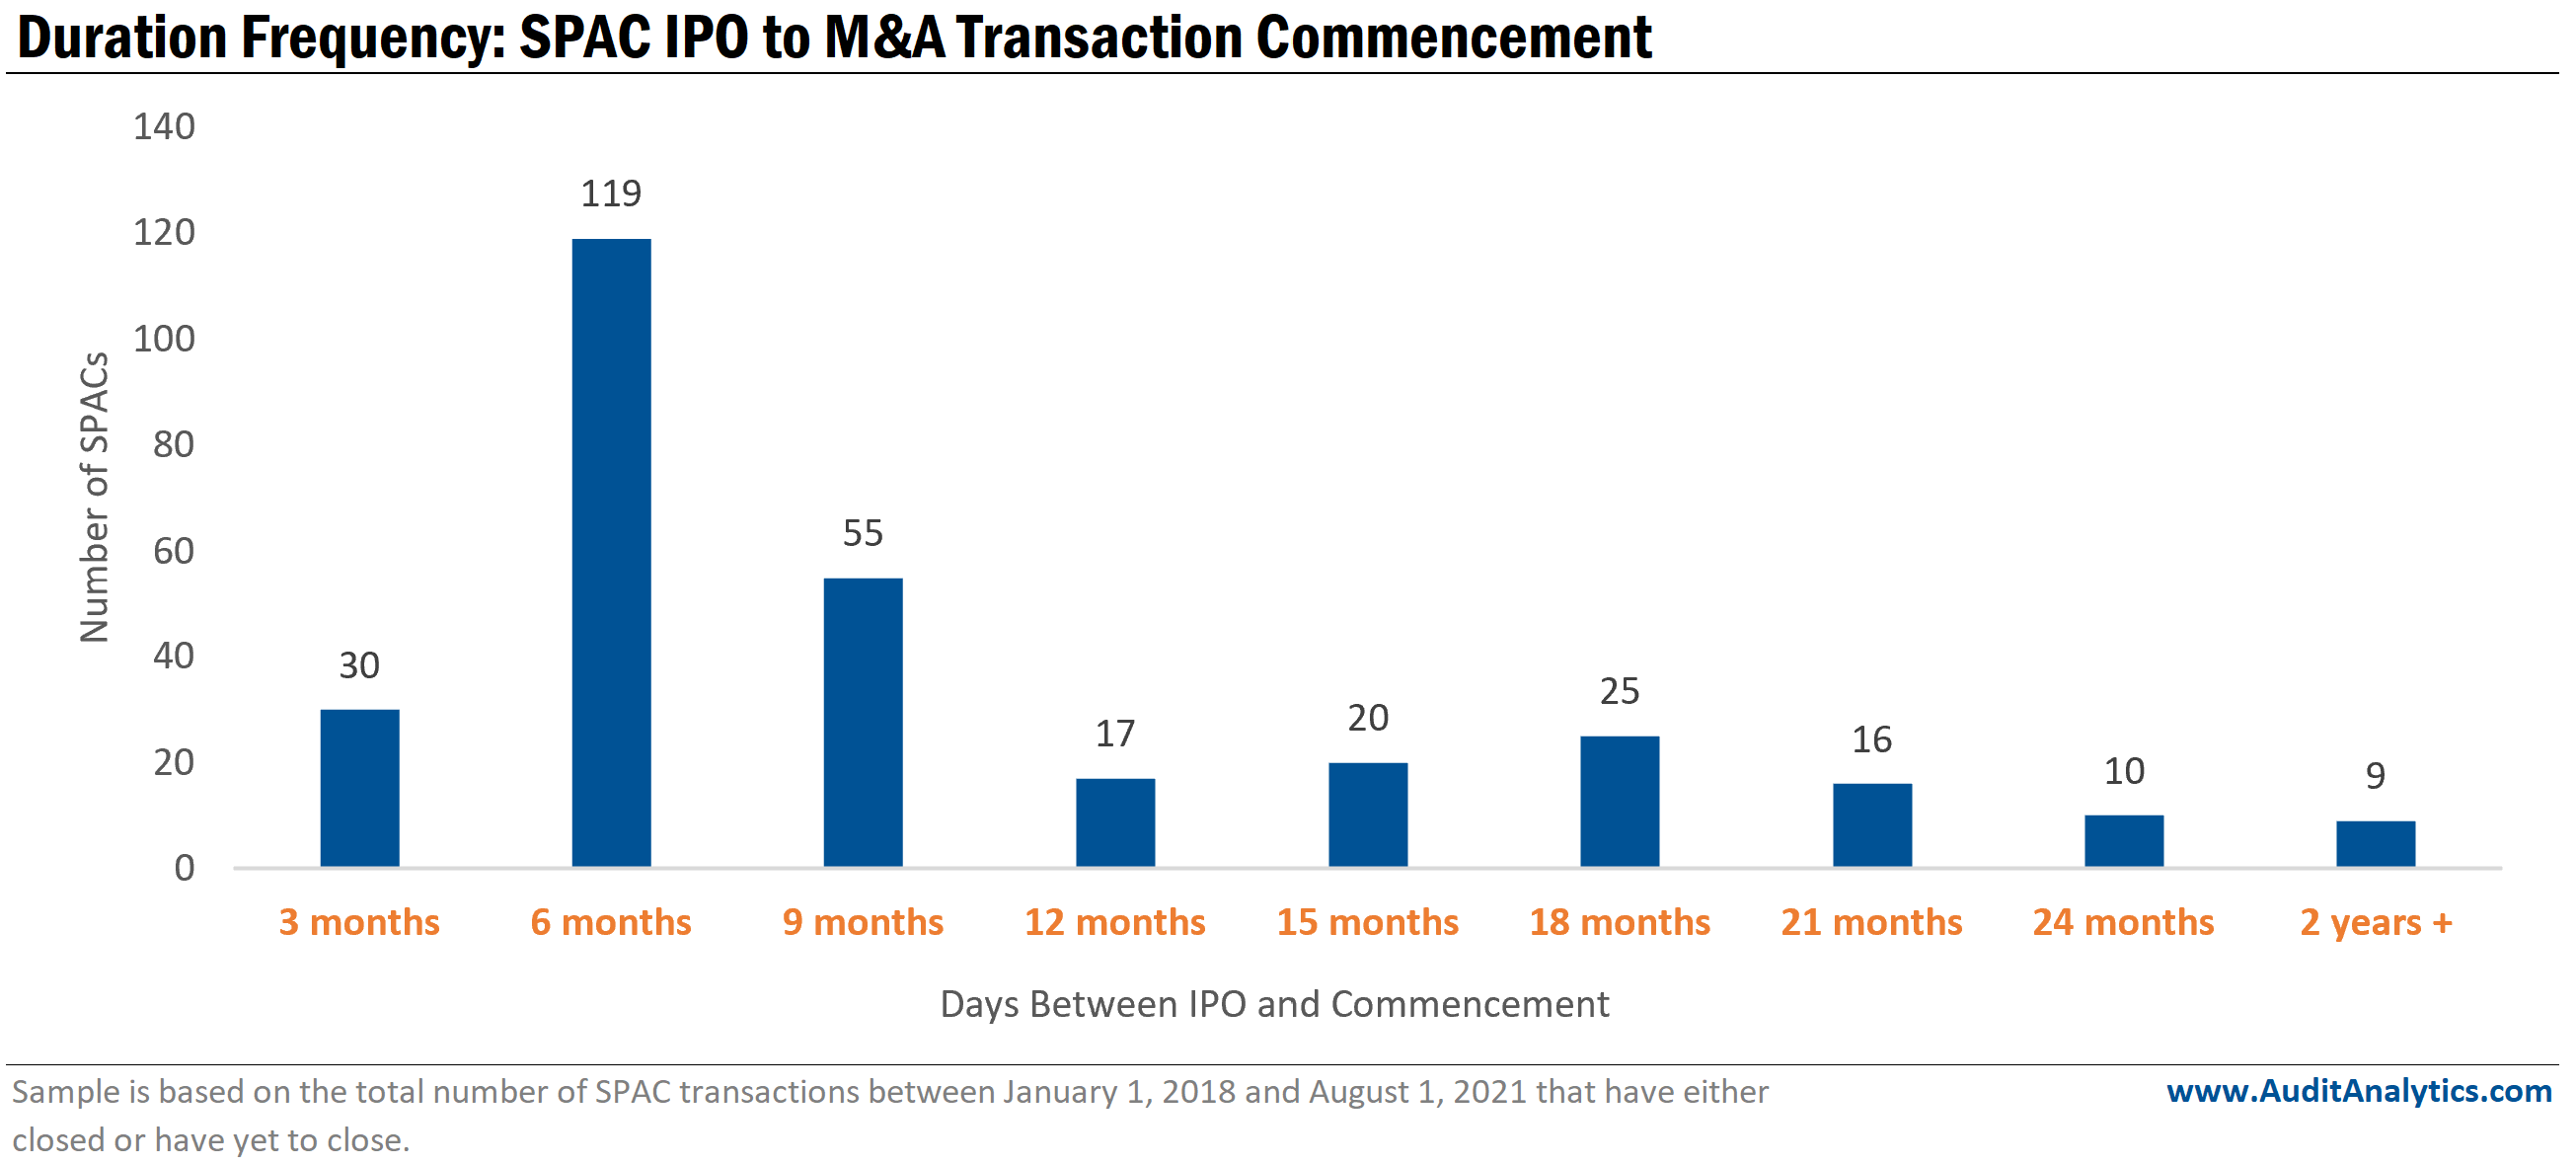 Duration frequency: SPAC IPO to M&A Transaction Commencement